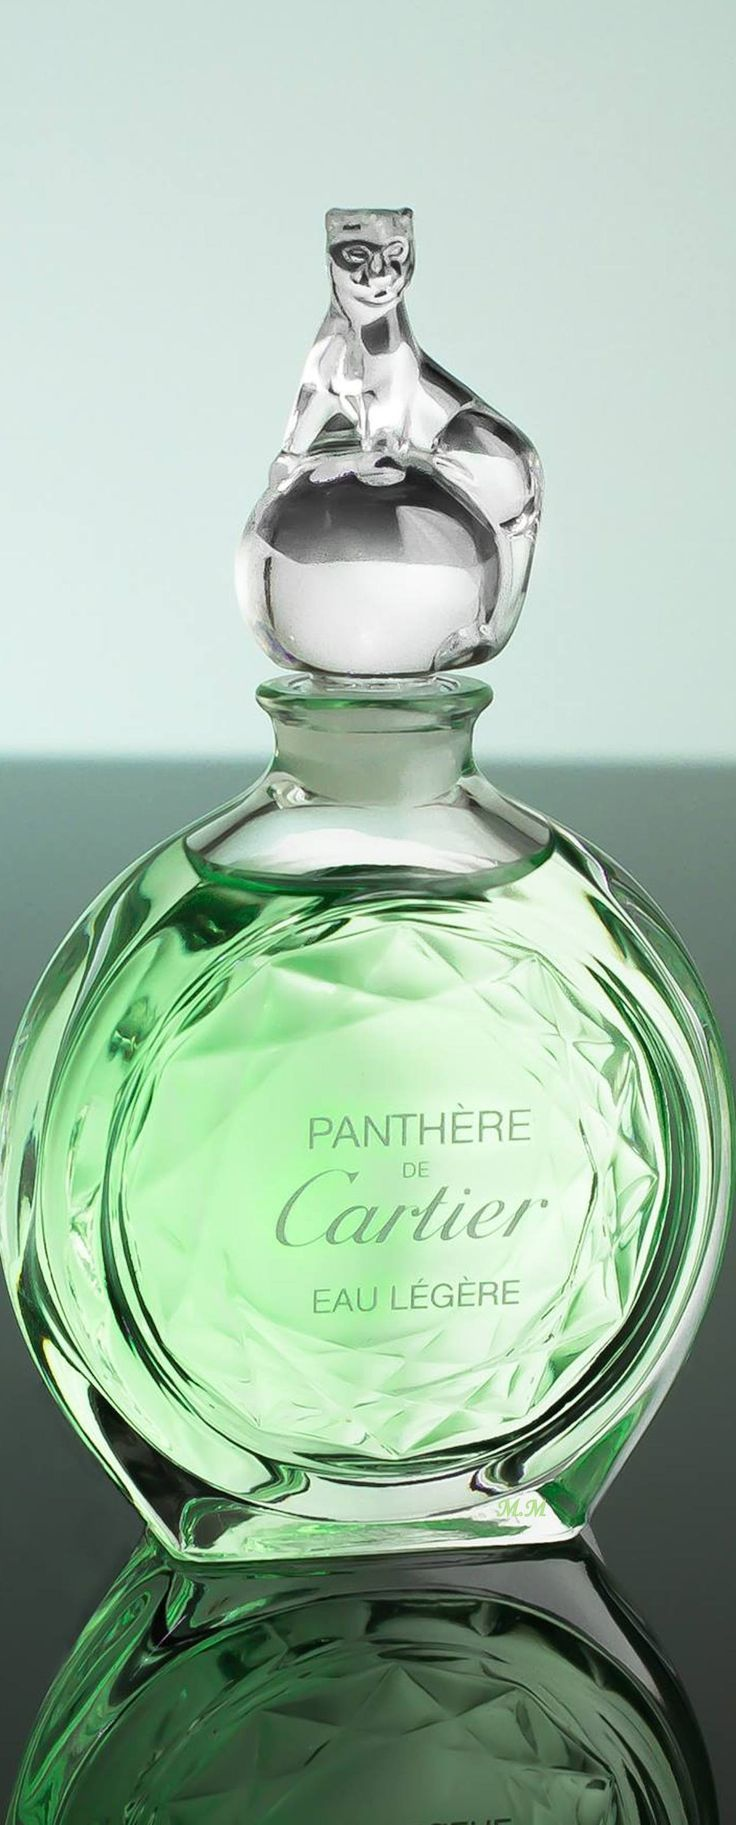 42 Best Perfume Images On Pinterest Fragrance Perfume Bottles And